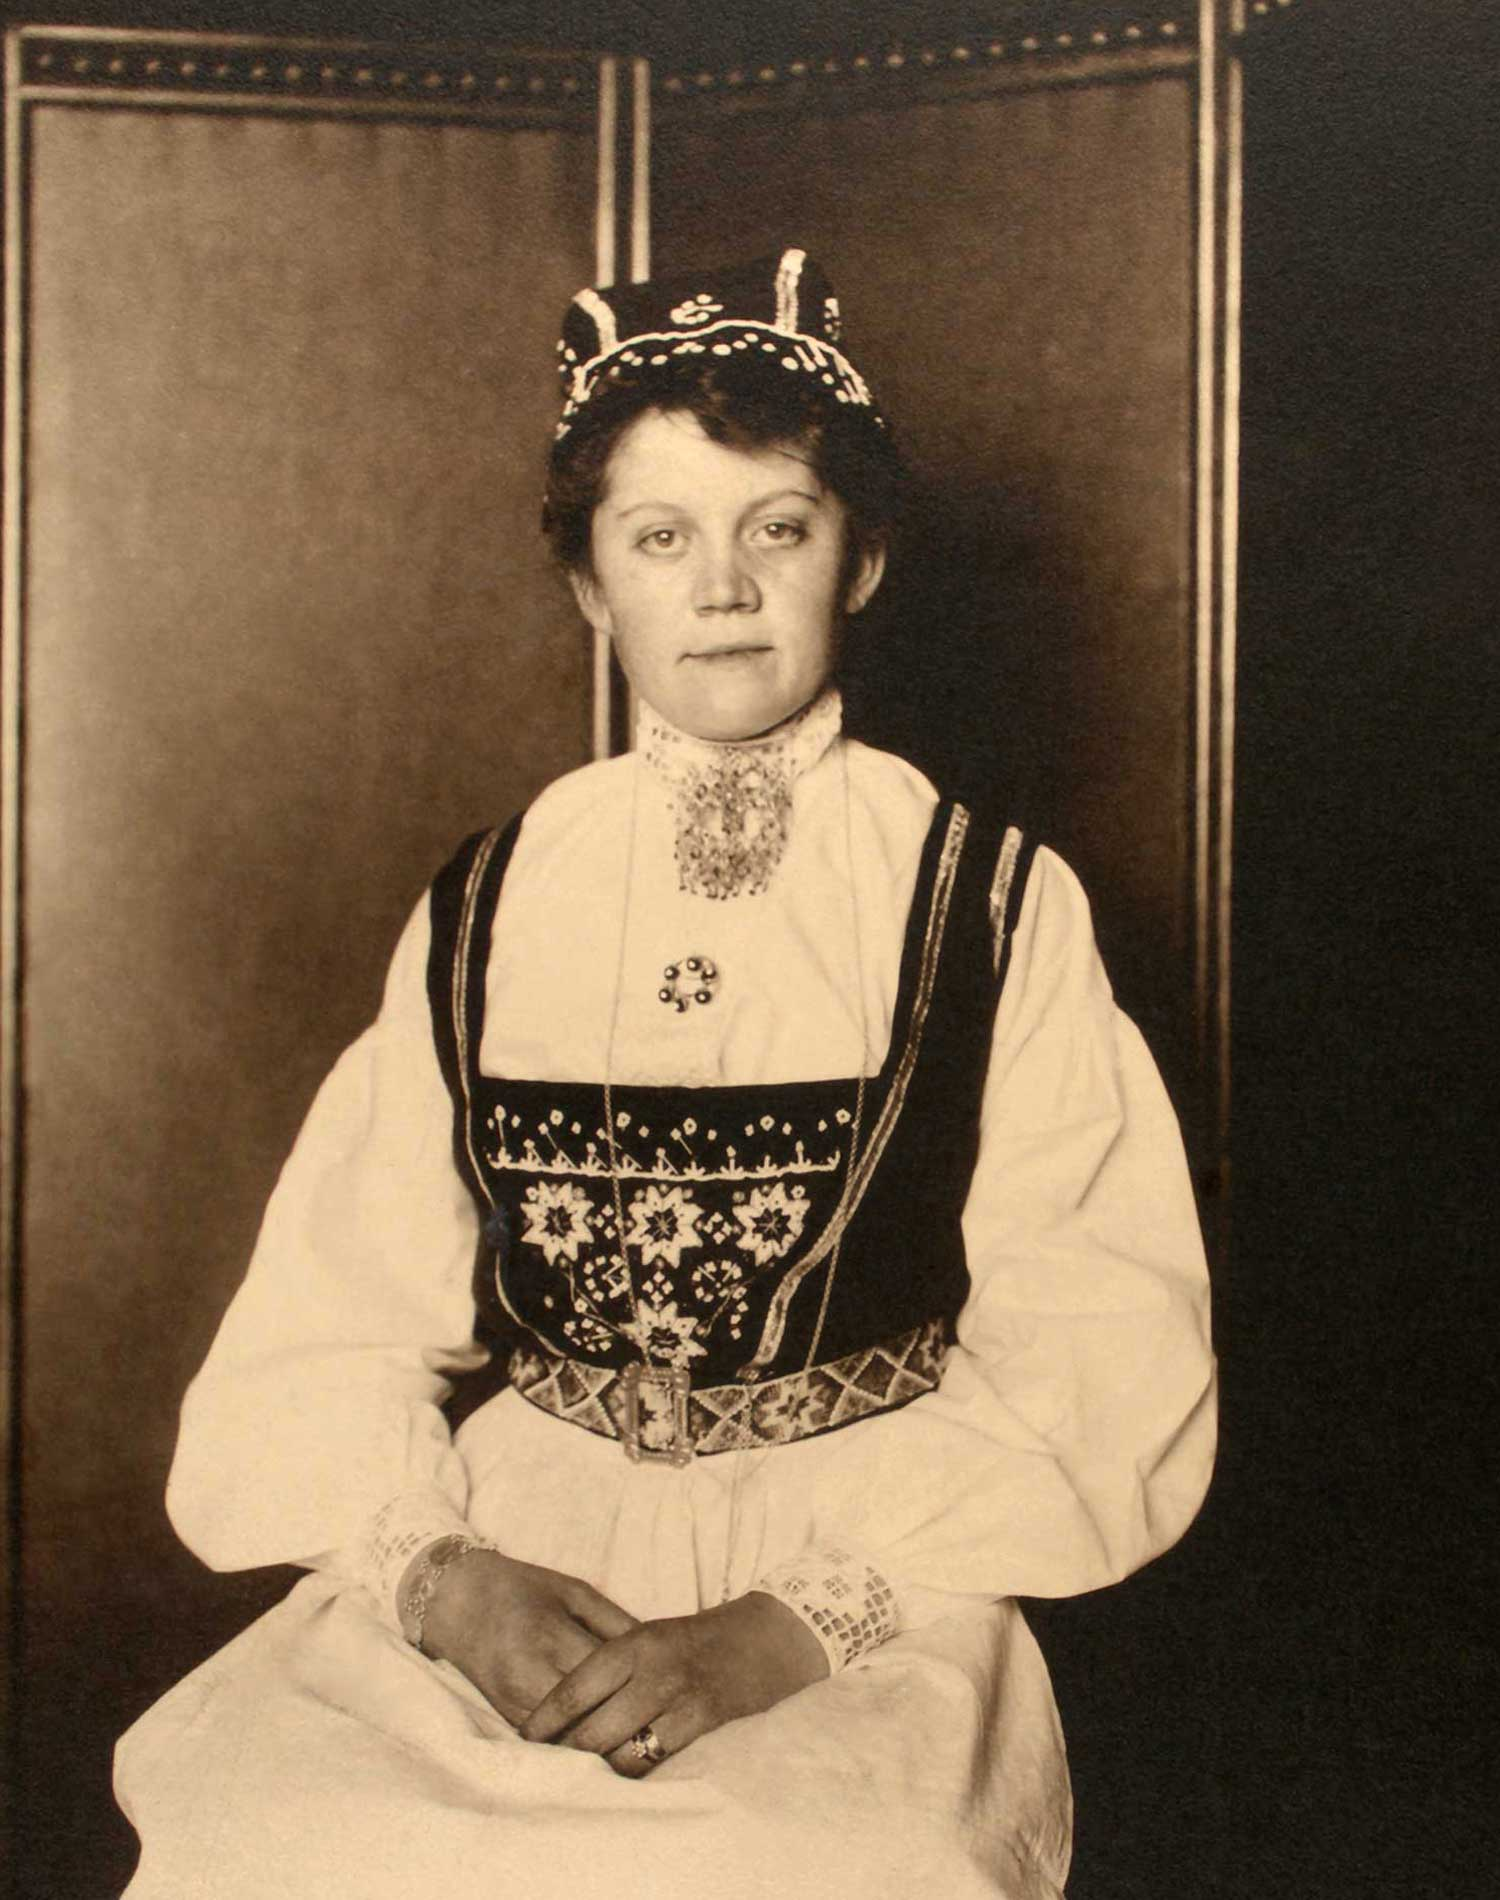 'Norwegian woman' (c. 1910)